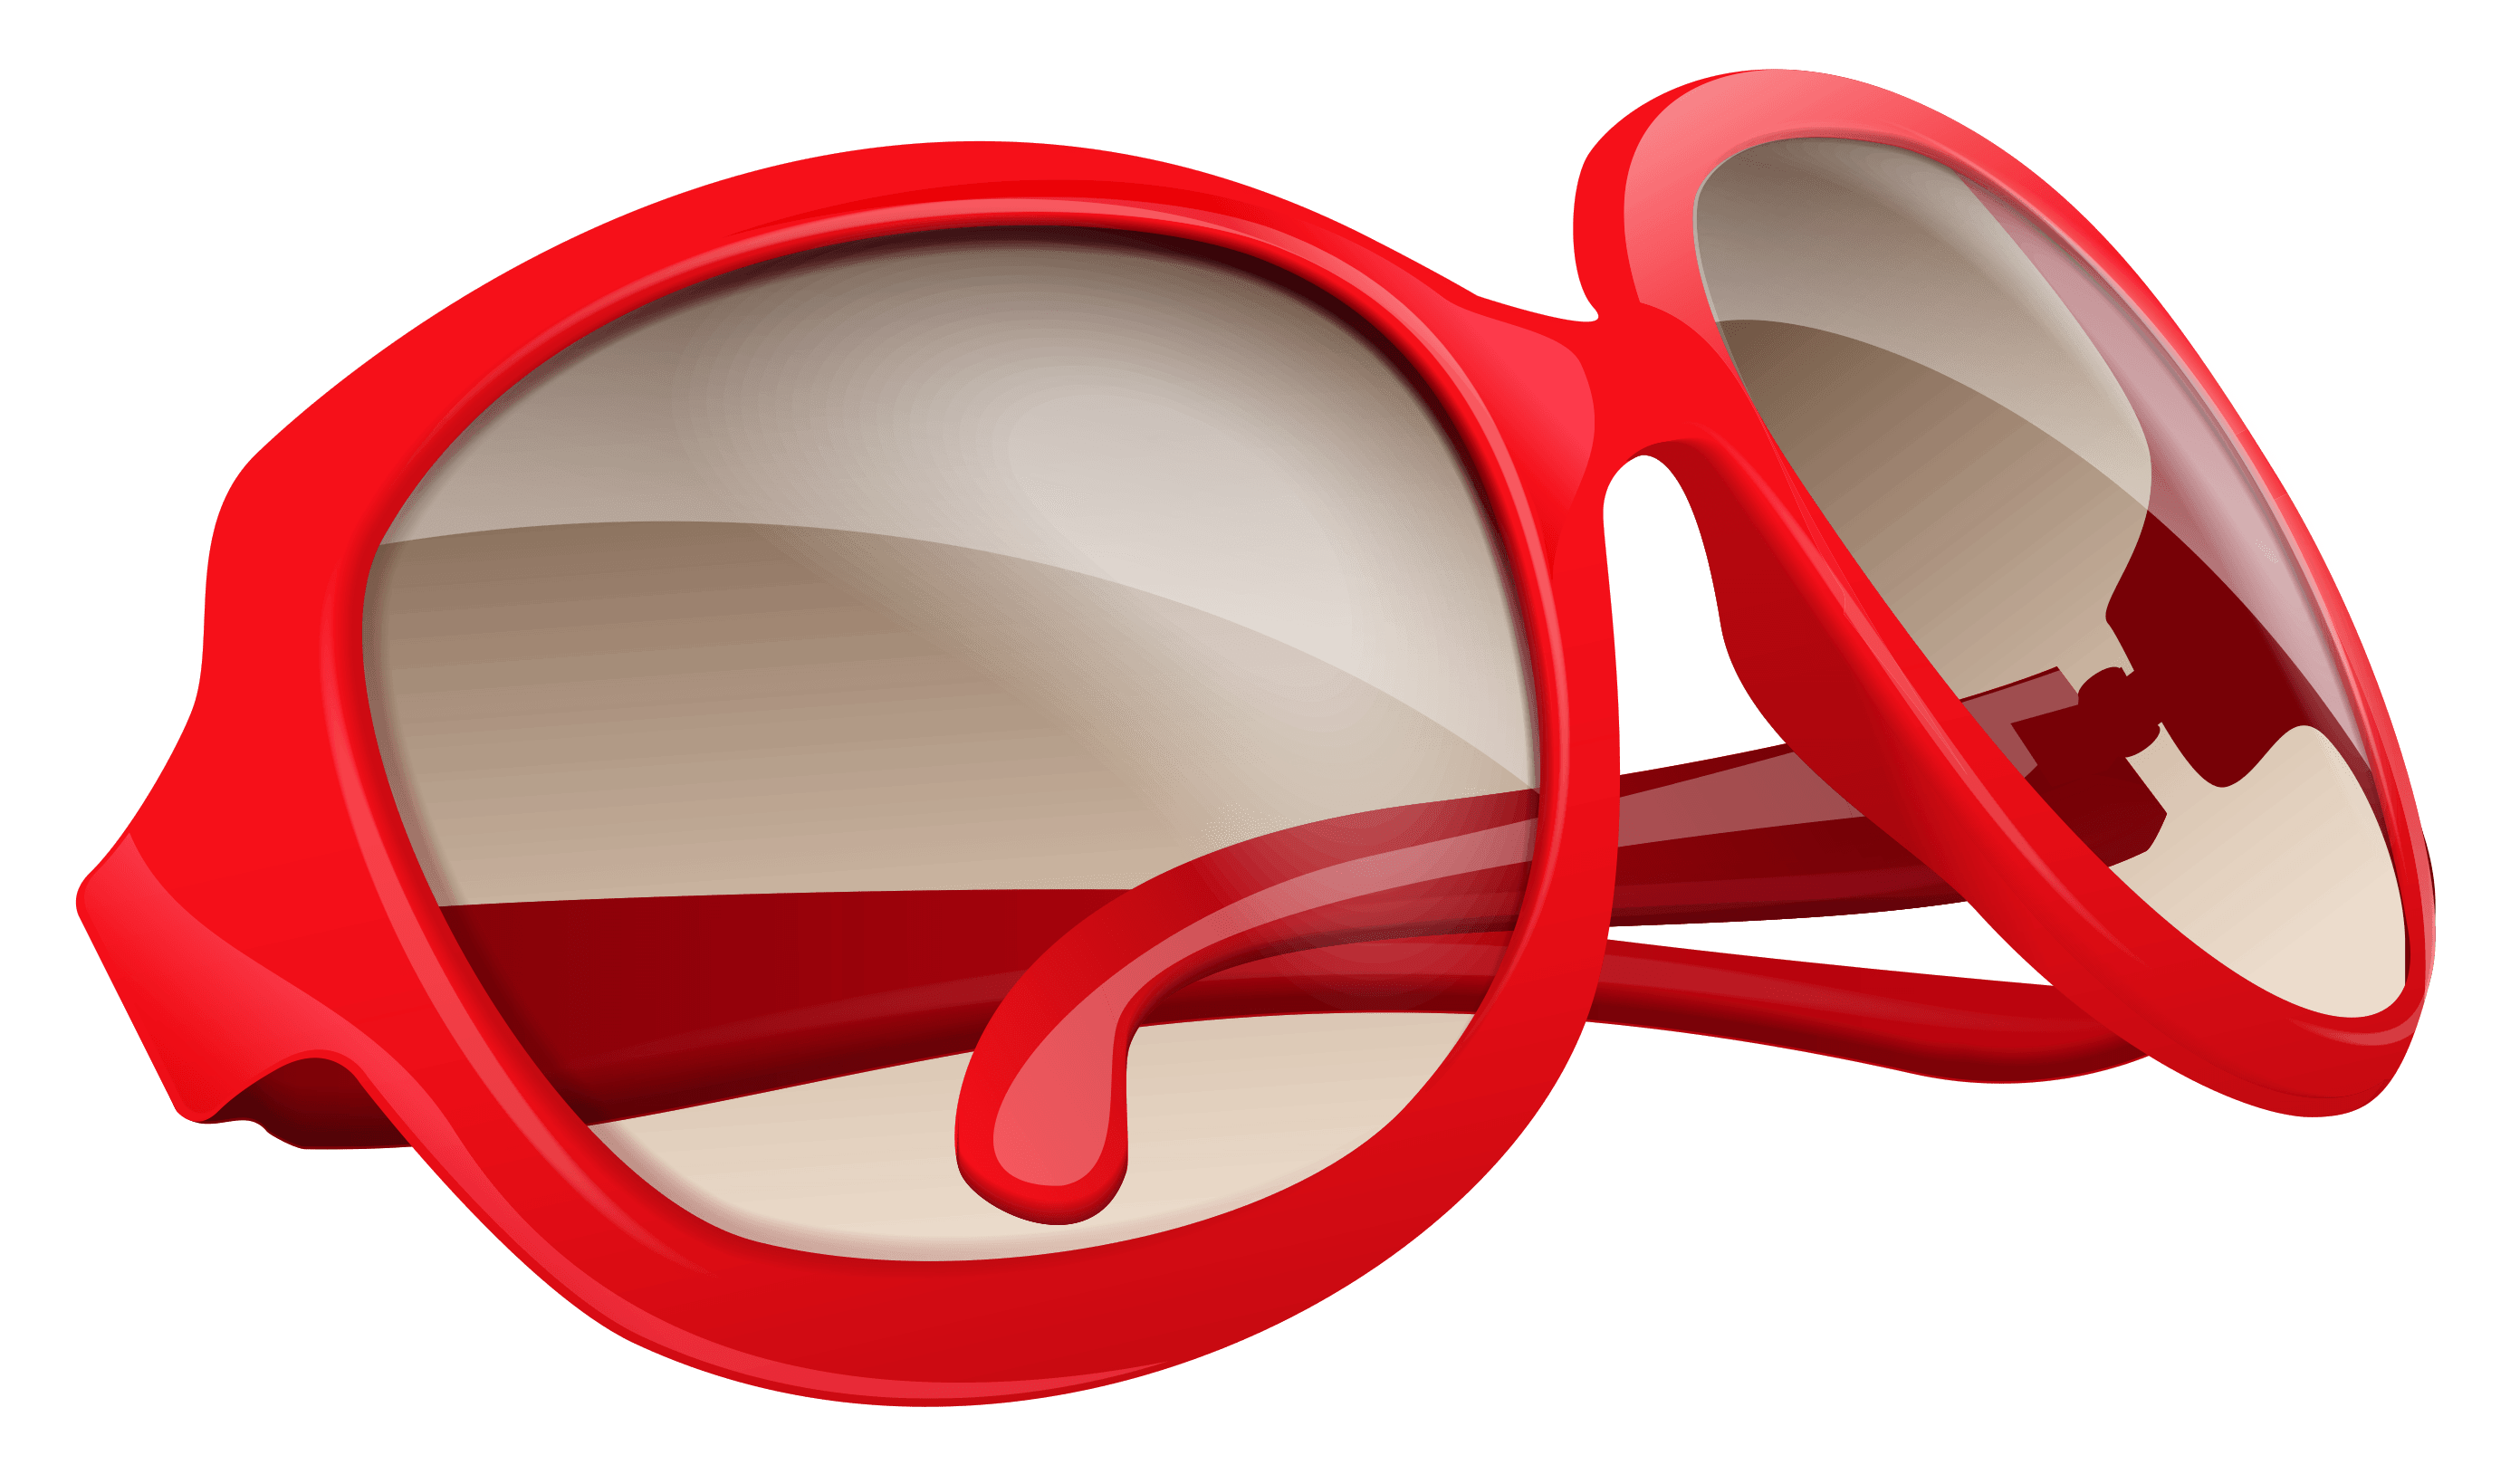 Clipart sunglasses printable. Free saucer cliparts download